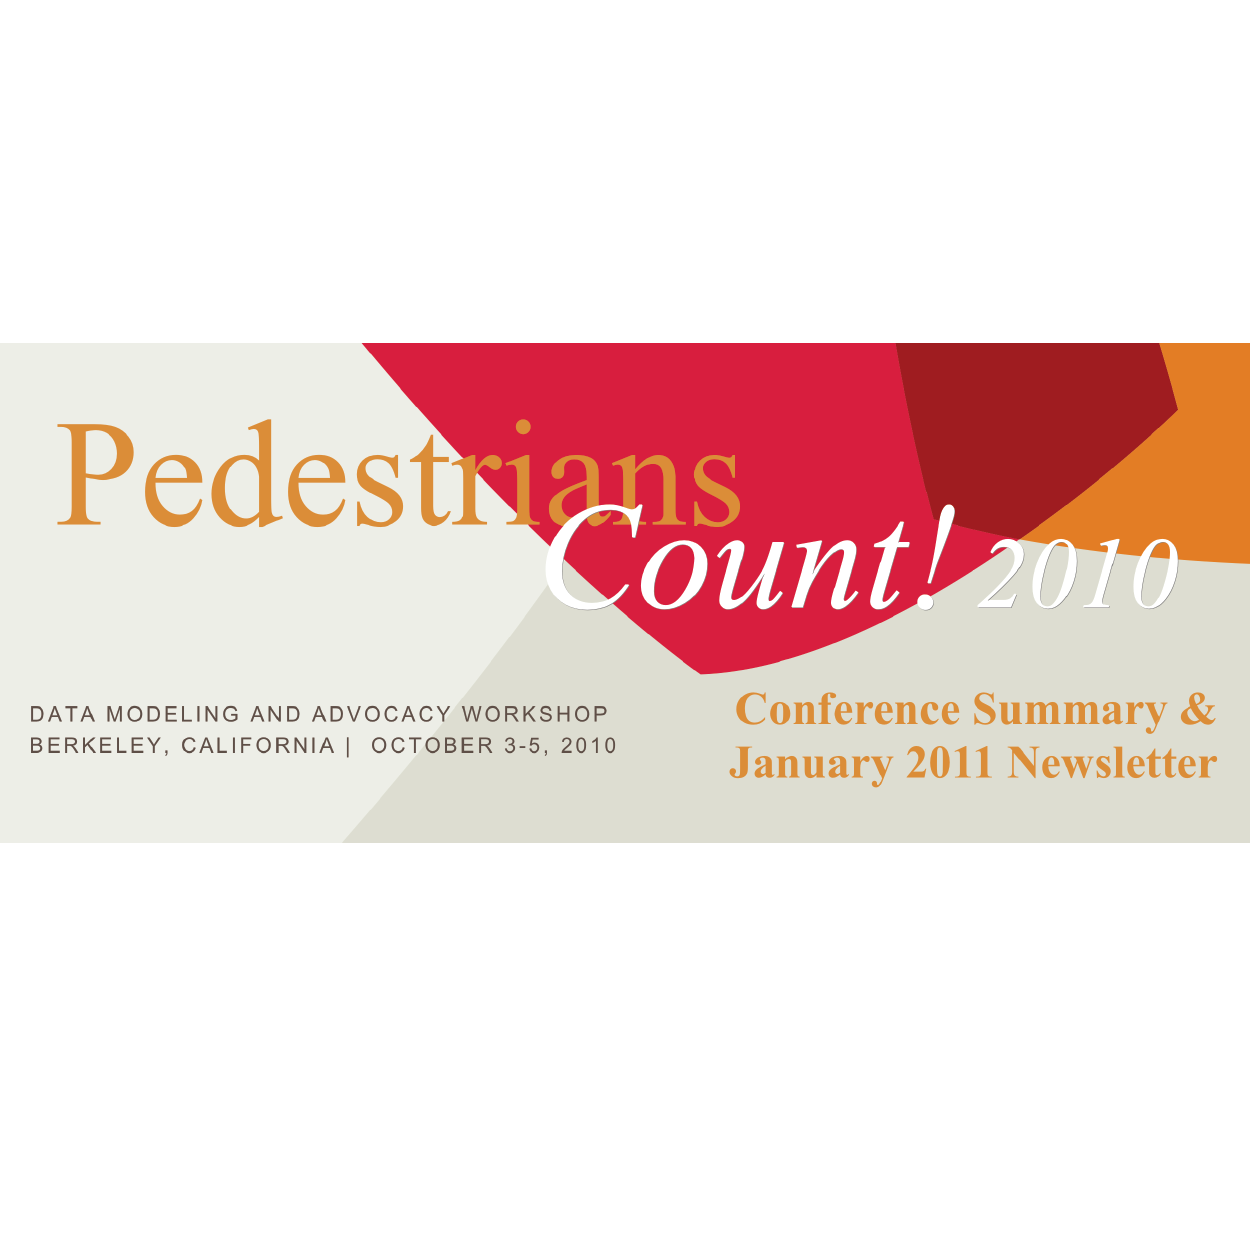 PedsCount 2010 Cover.png